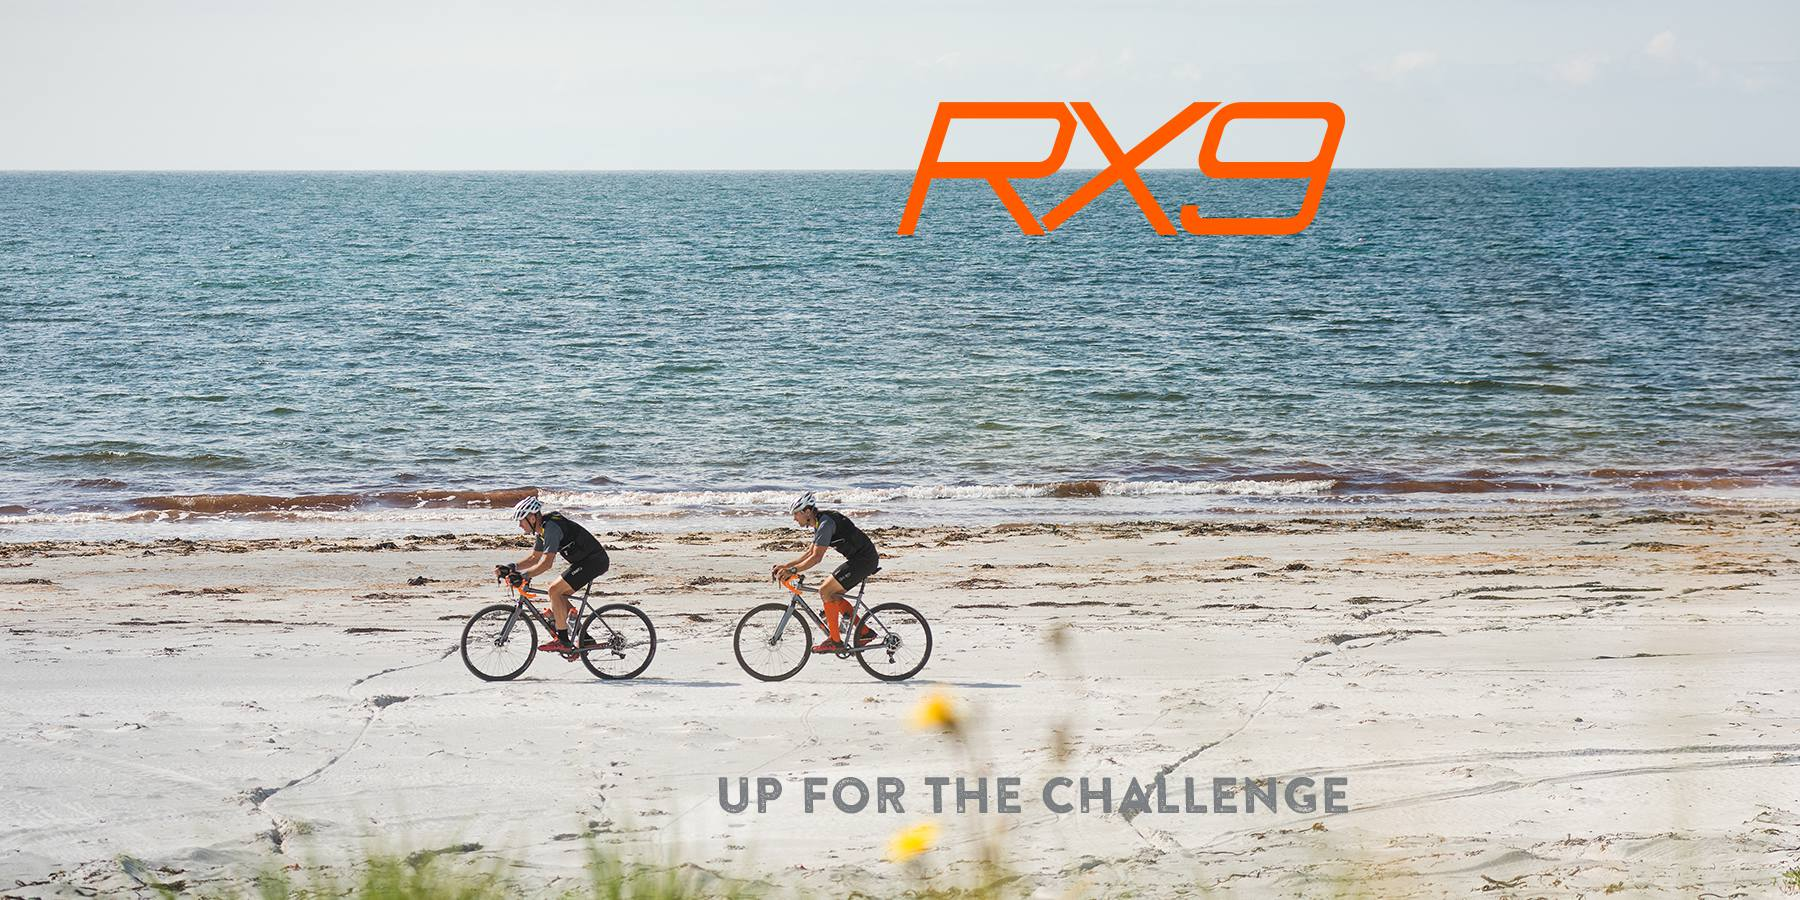 The Orange RX9 – always up for the challenge